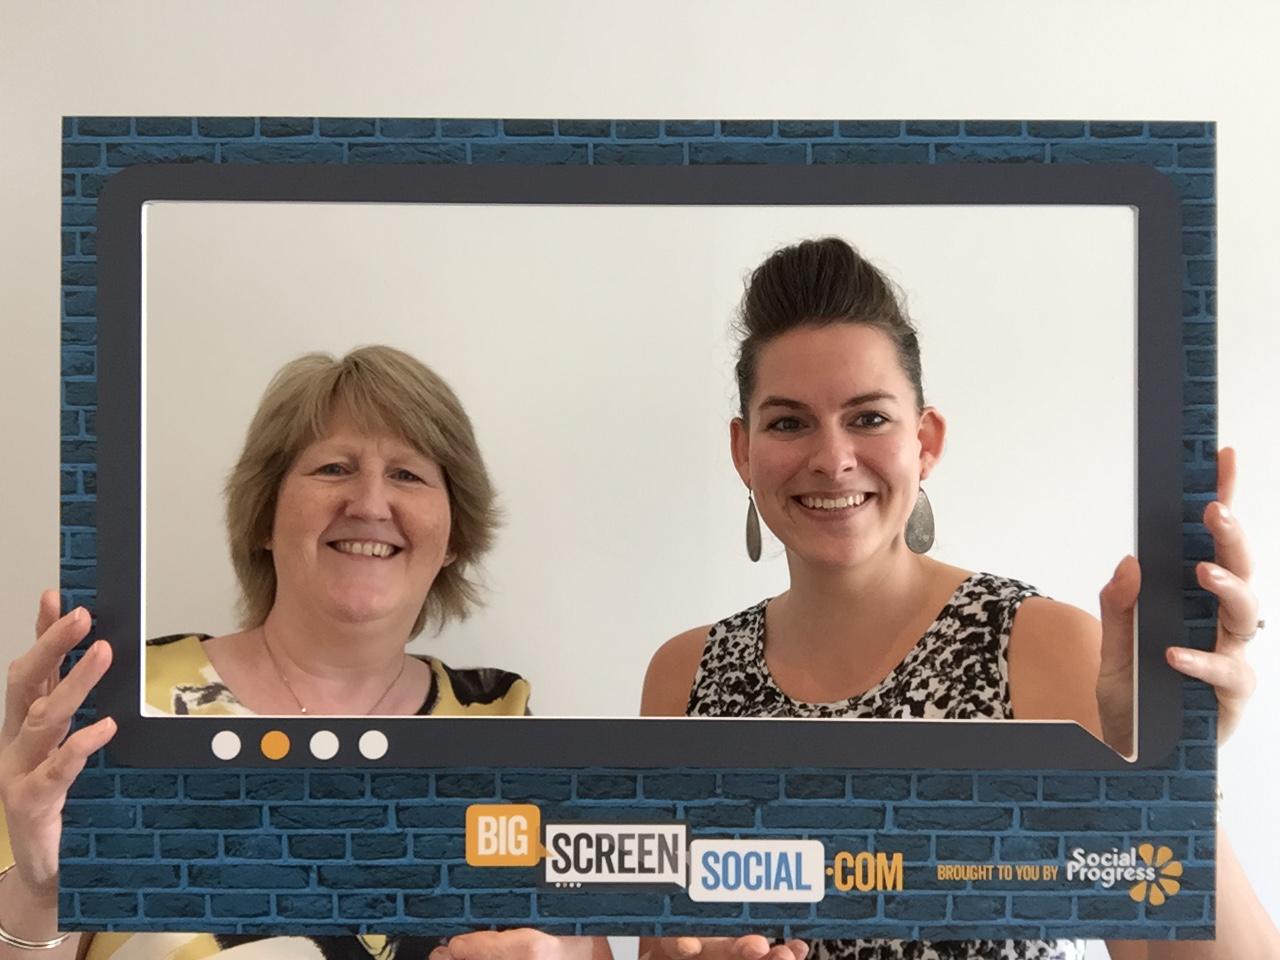 Big Screen Social - Selfie Frame - Social Progress Ltd - Techtrade Yorkshire - Twitter Wall